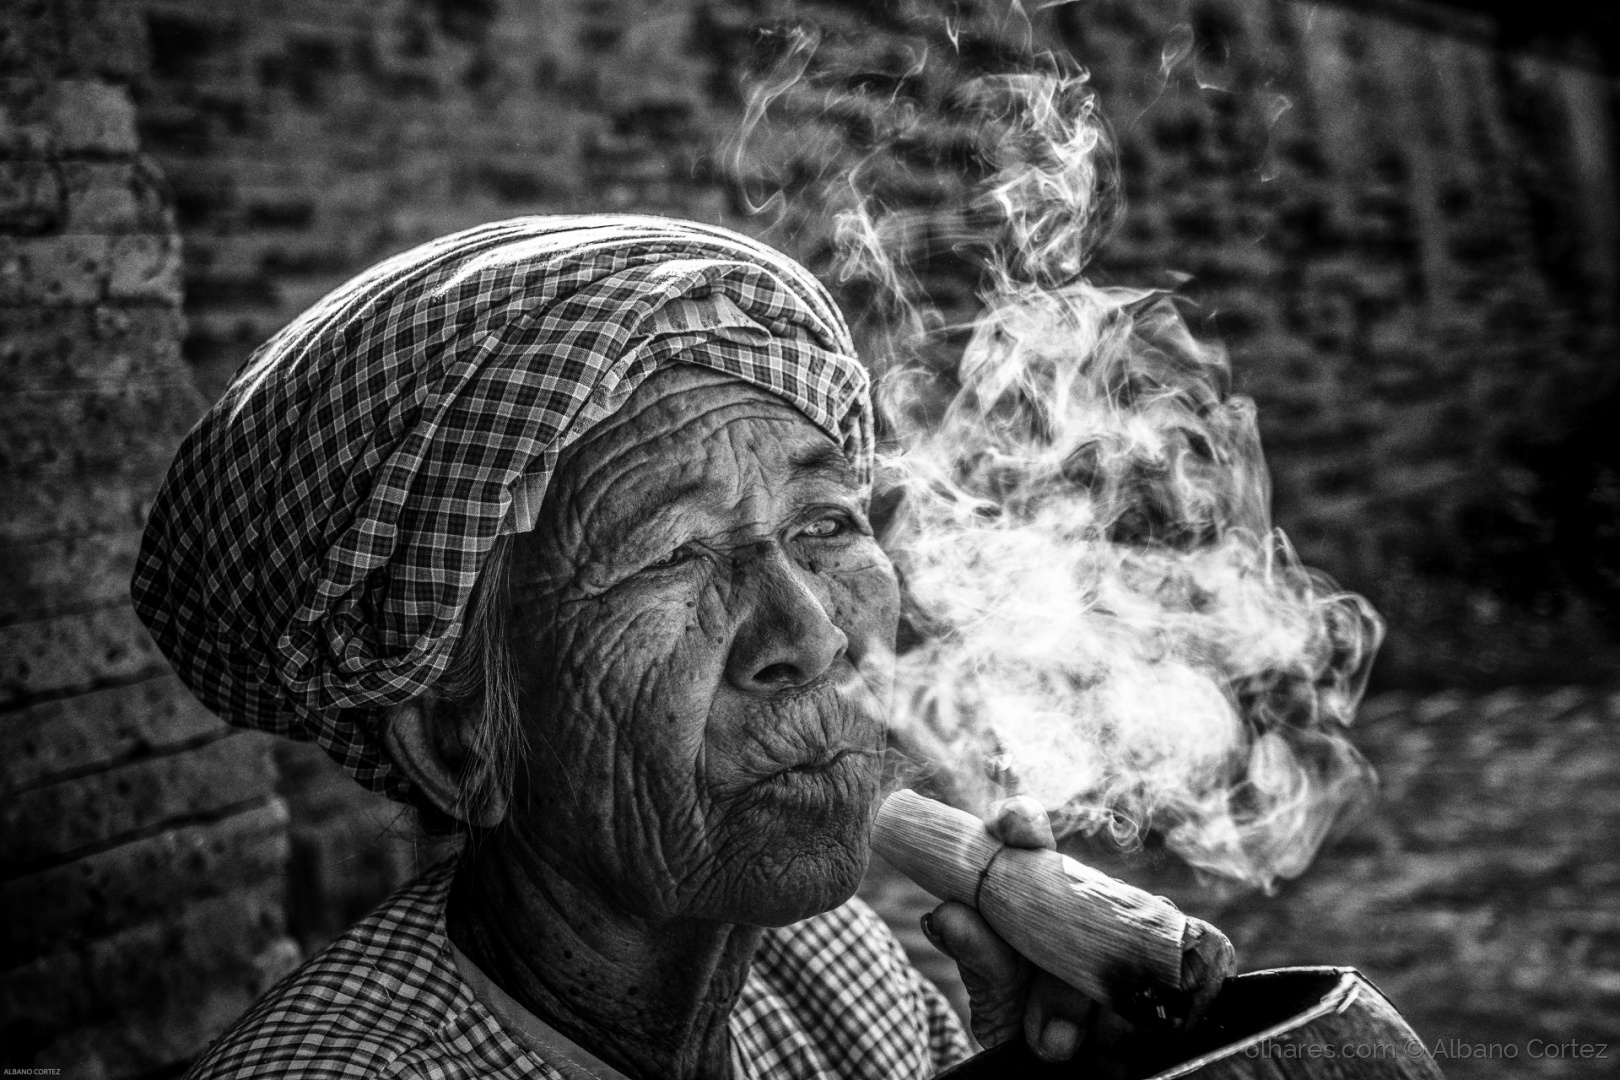 Retratos/Smoke gets in your eyes.